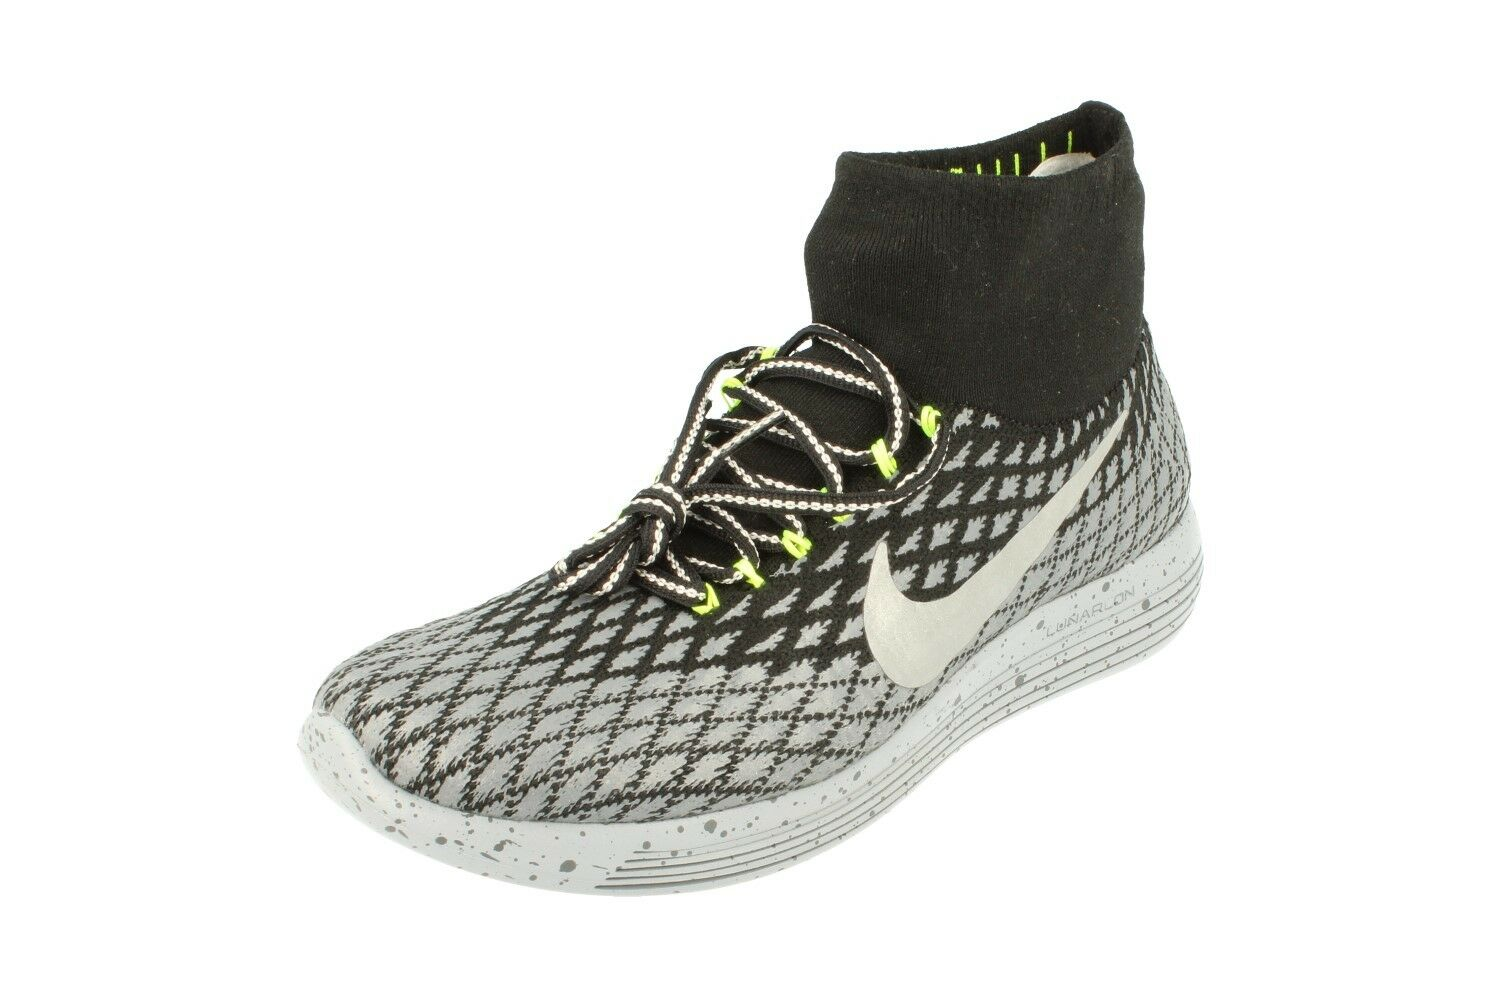 Nike Lunarepic 849664 Flyknit Shield  Uomo Running Trainers 849664 Lunarepic Sneakers Schuhes 001 bdad5c